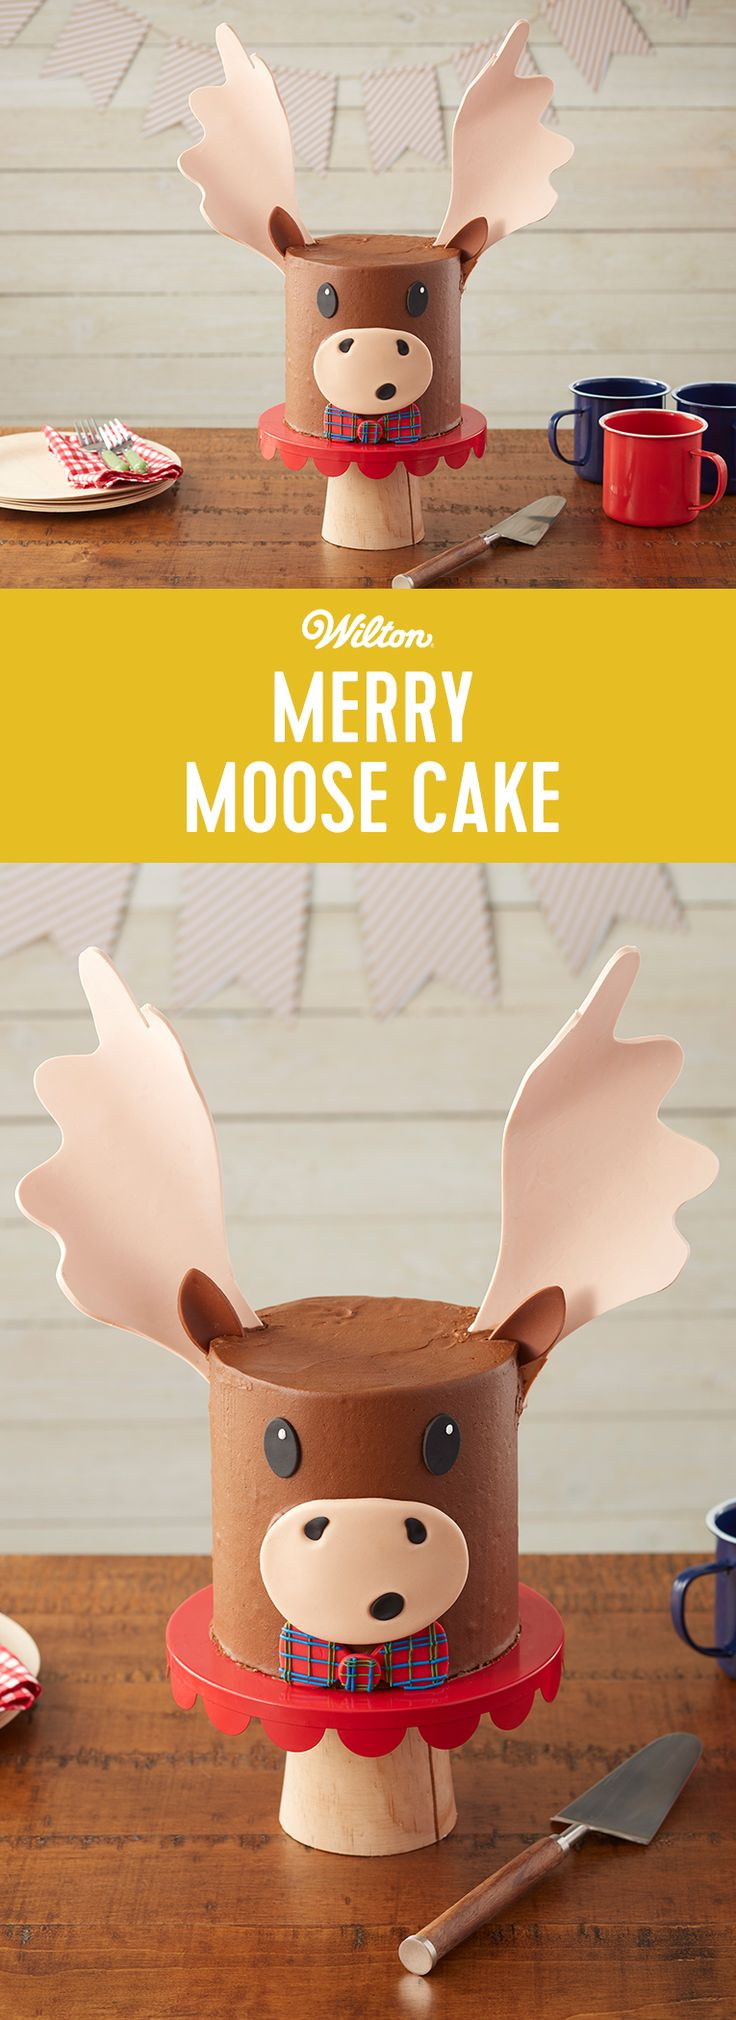 Who doesn't love a merry moose, eh? This Merry Moose Cake is dressed up with a cute basketweave bow, ready for your Christmas party, Canada Day celebration or your winter-inspired woodland party. His antlers are made using gum paste, which has to dry for about three days, so plan ahead if you're making this cake for a party. #wiltoncakes #cake #animalcake #buttercream #fondant #gumpaste #moose #desserts #birthday #winter